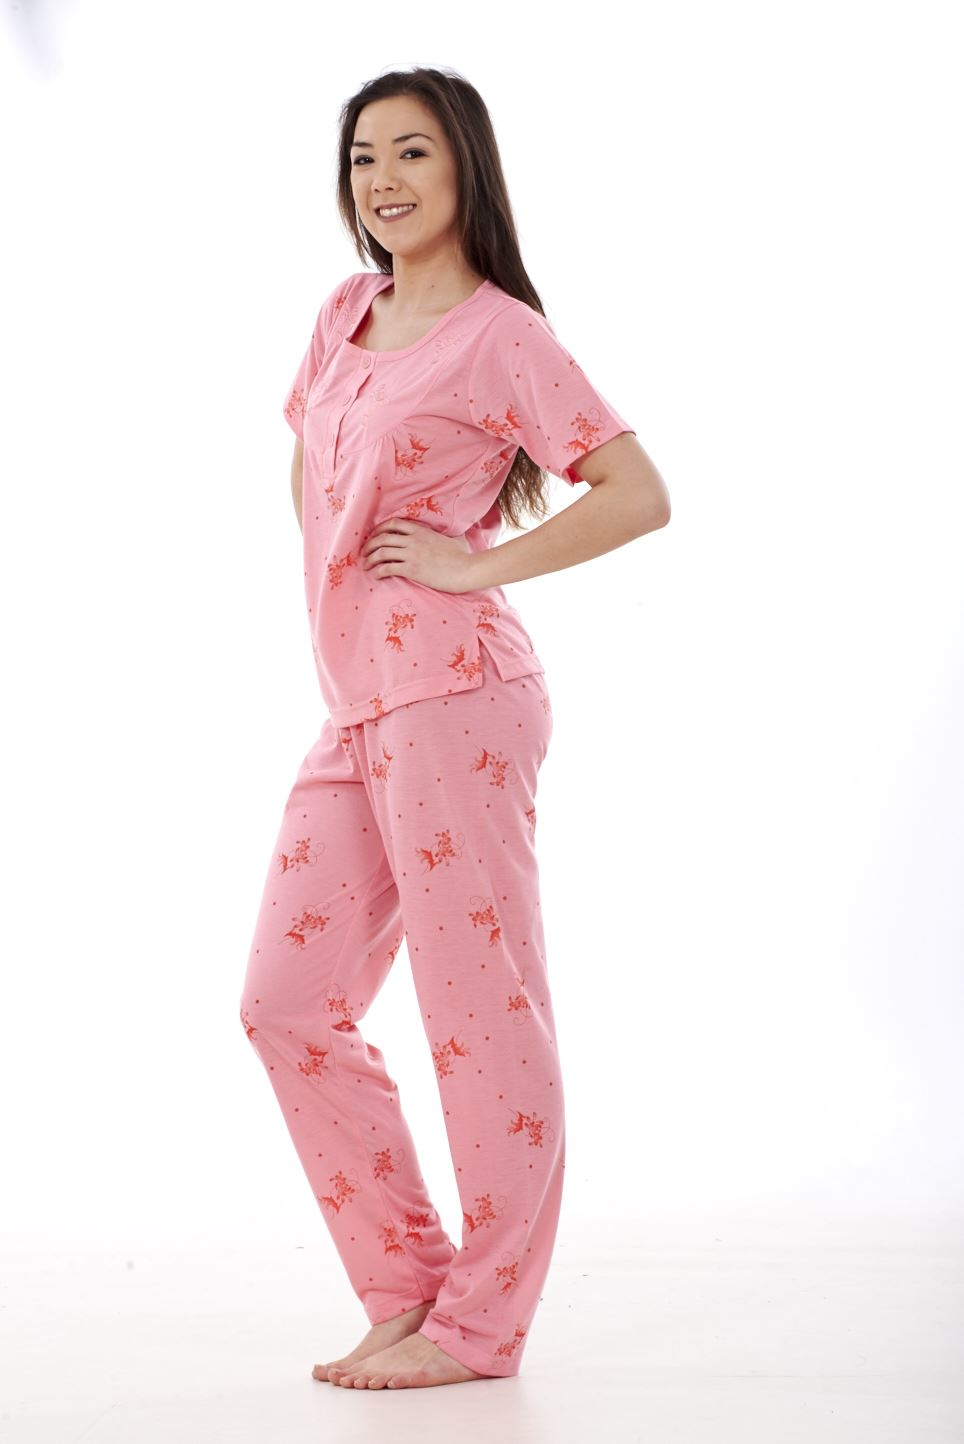 Free shipping and returns on Women's Short Set Pajama Sets at imaginary-7mbh1j.cf Skip navigation. Give the card that gives! We donate 1% of all Gift Card sales to local nonprofits. Shop Gift Cards. Designer. Women's Short Set Pajama Sets. Get It Fast: Set location off. 97 items.